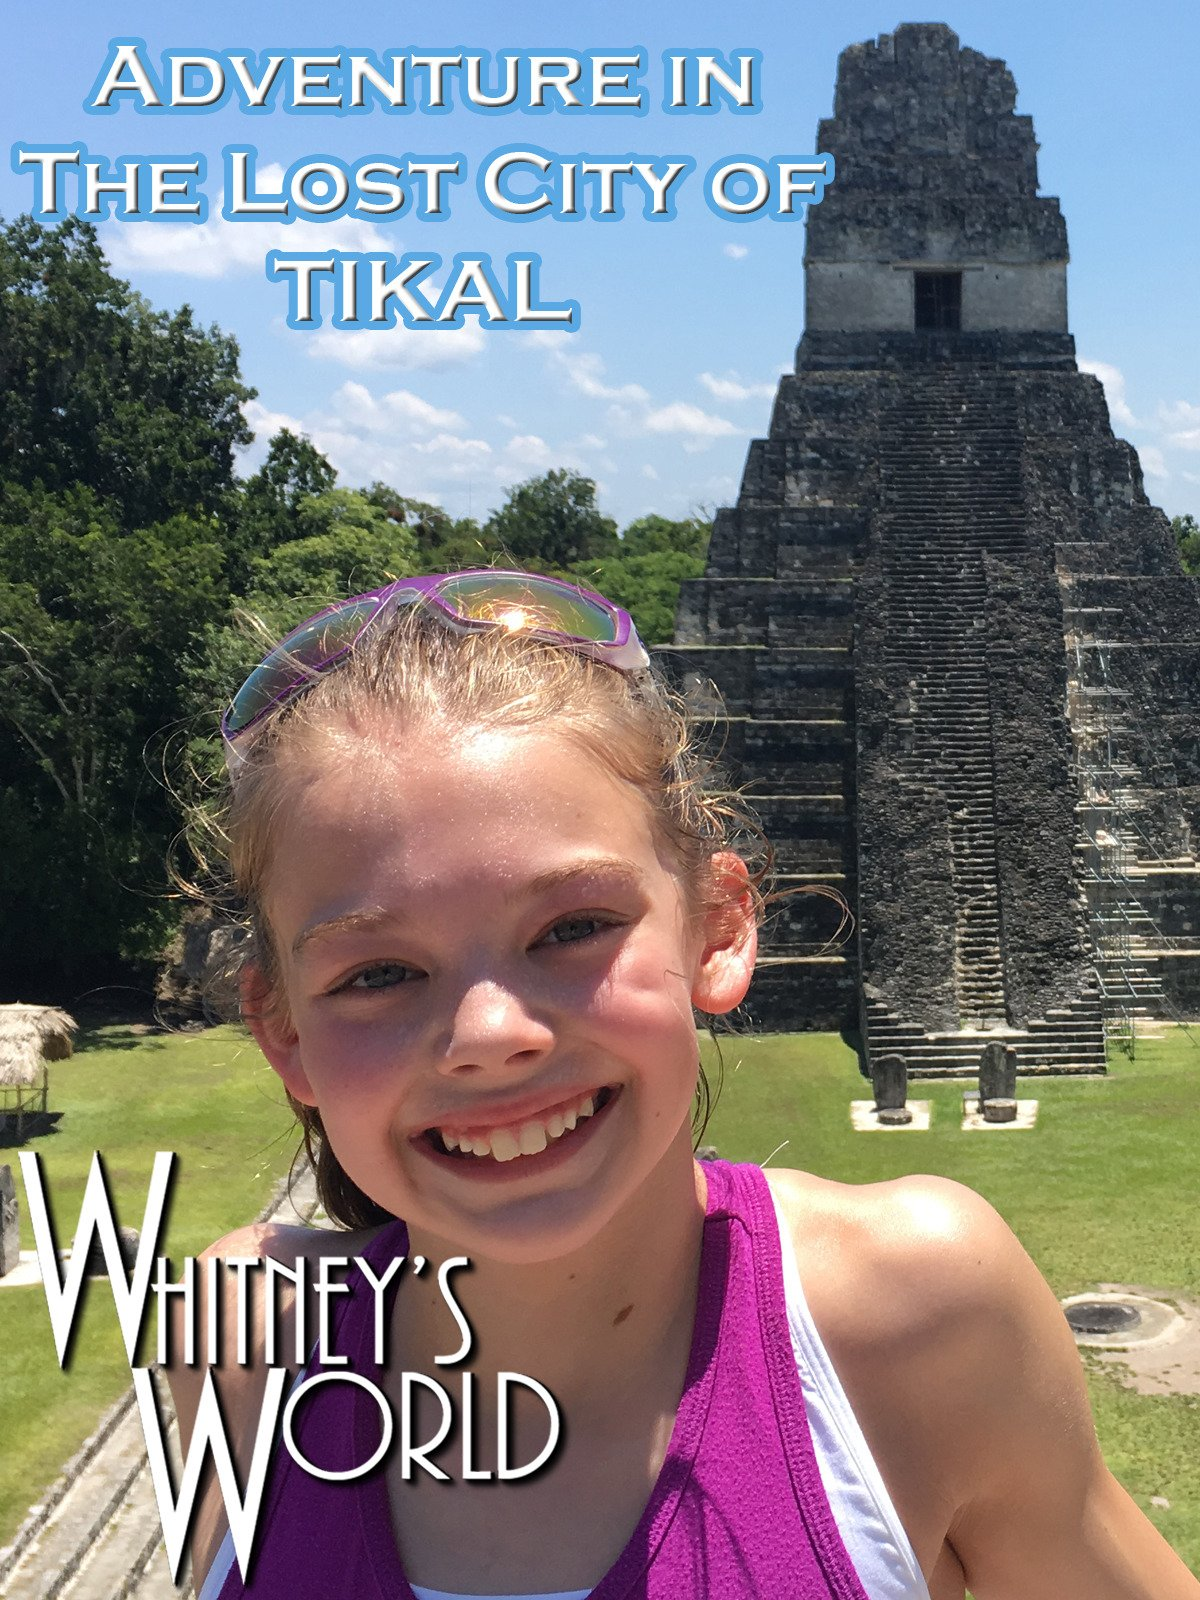 Adventure in the Lost City of Tikal